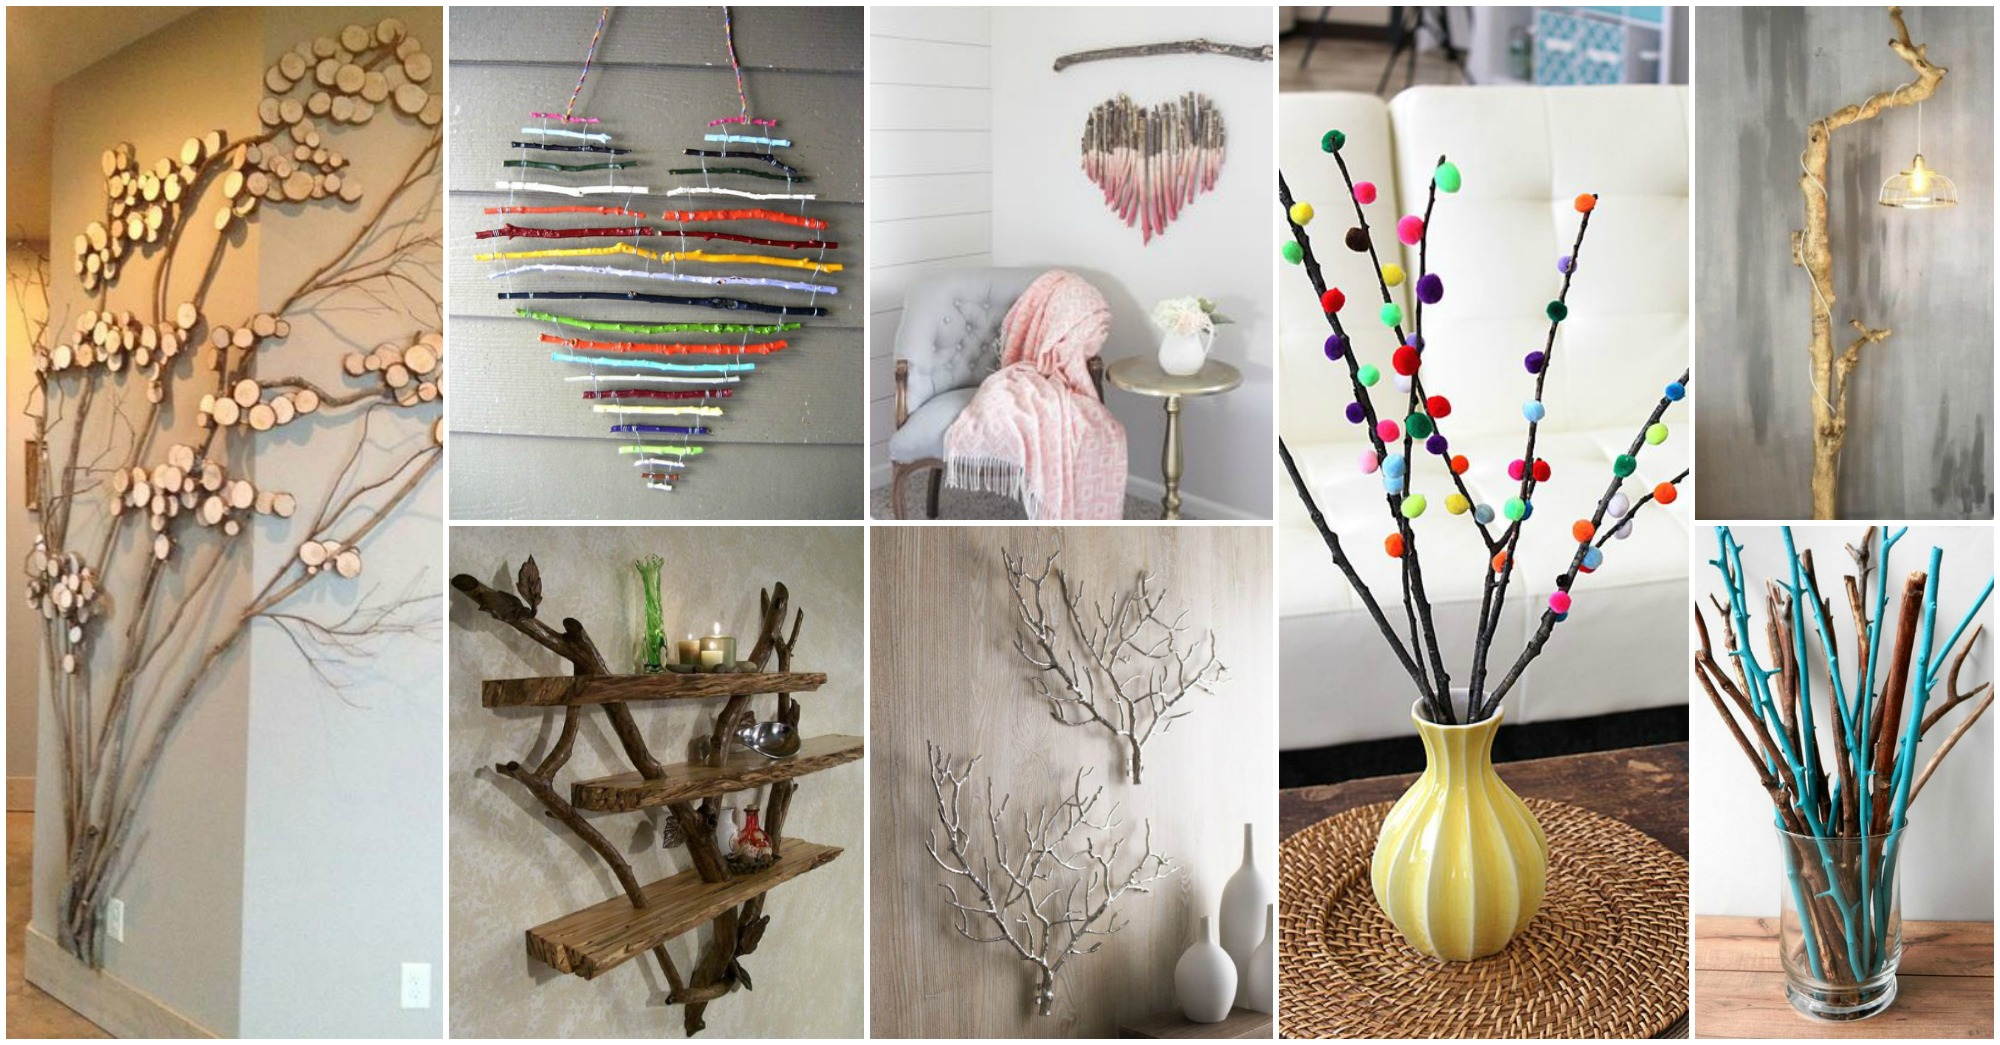 diy tree branches home decor ideas ForHow To Make Home Decorations